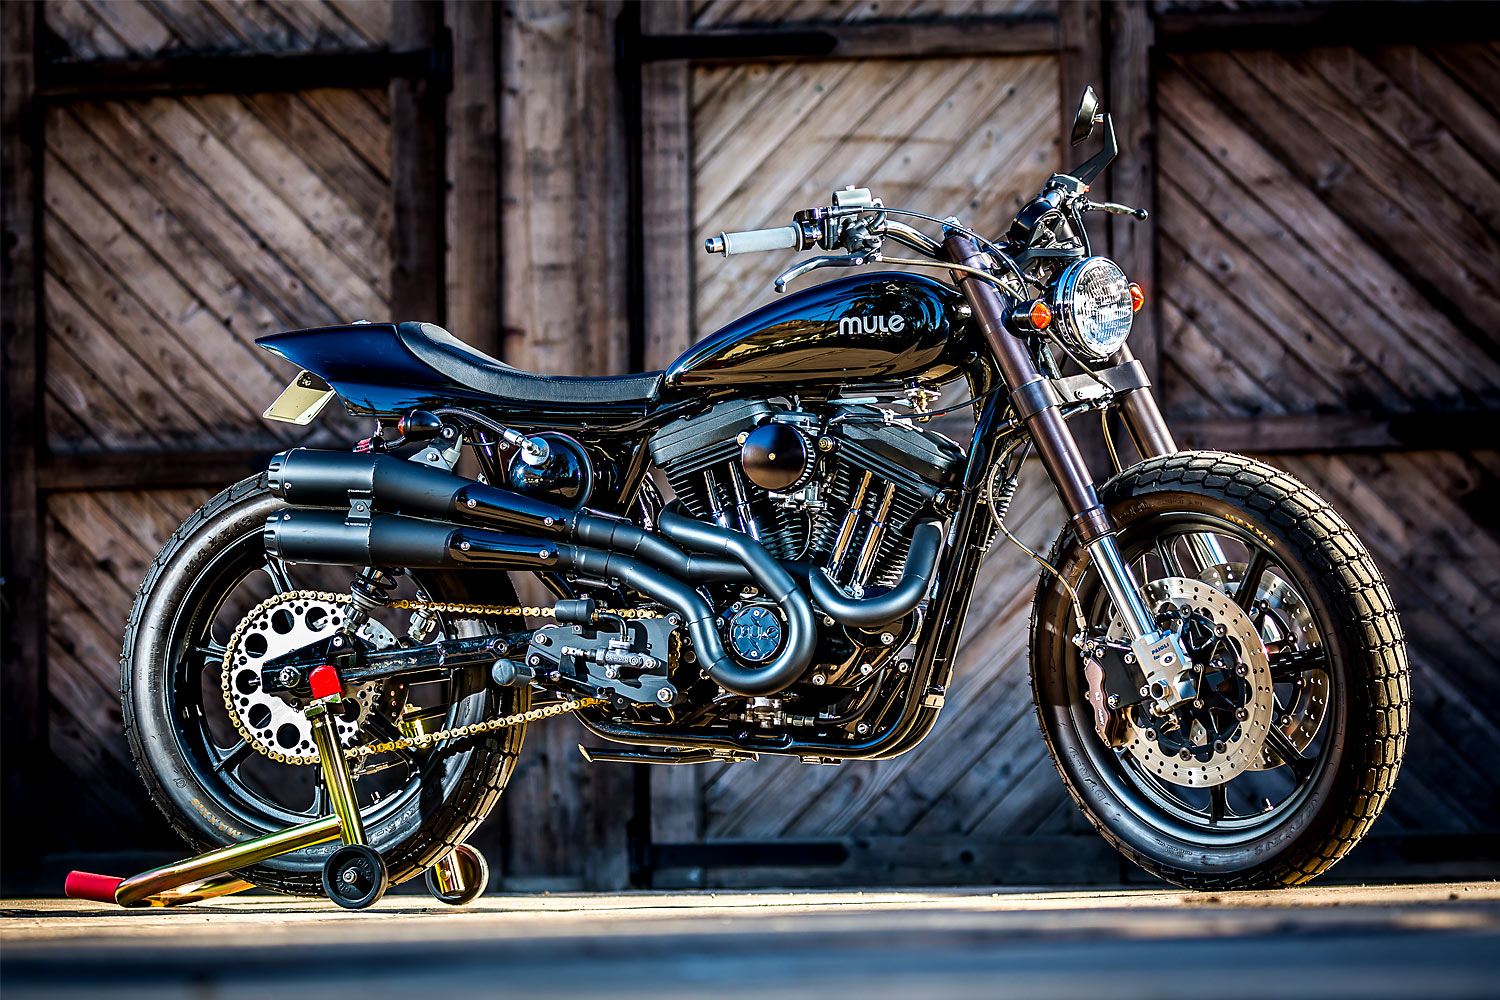 MULE VARIATIONS. The 'Ruppert's Ride' Harley 883 Tracker from Mule Motorcycles